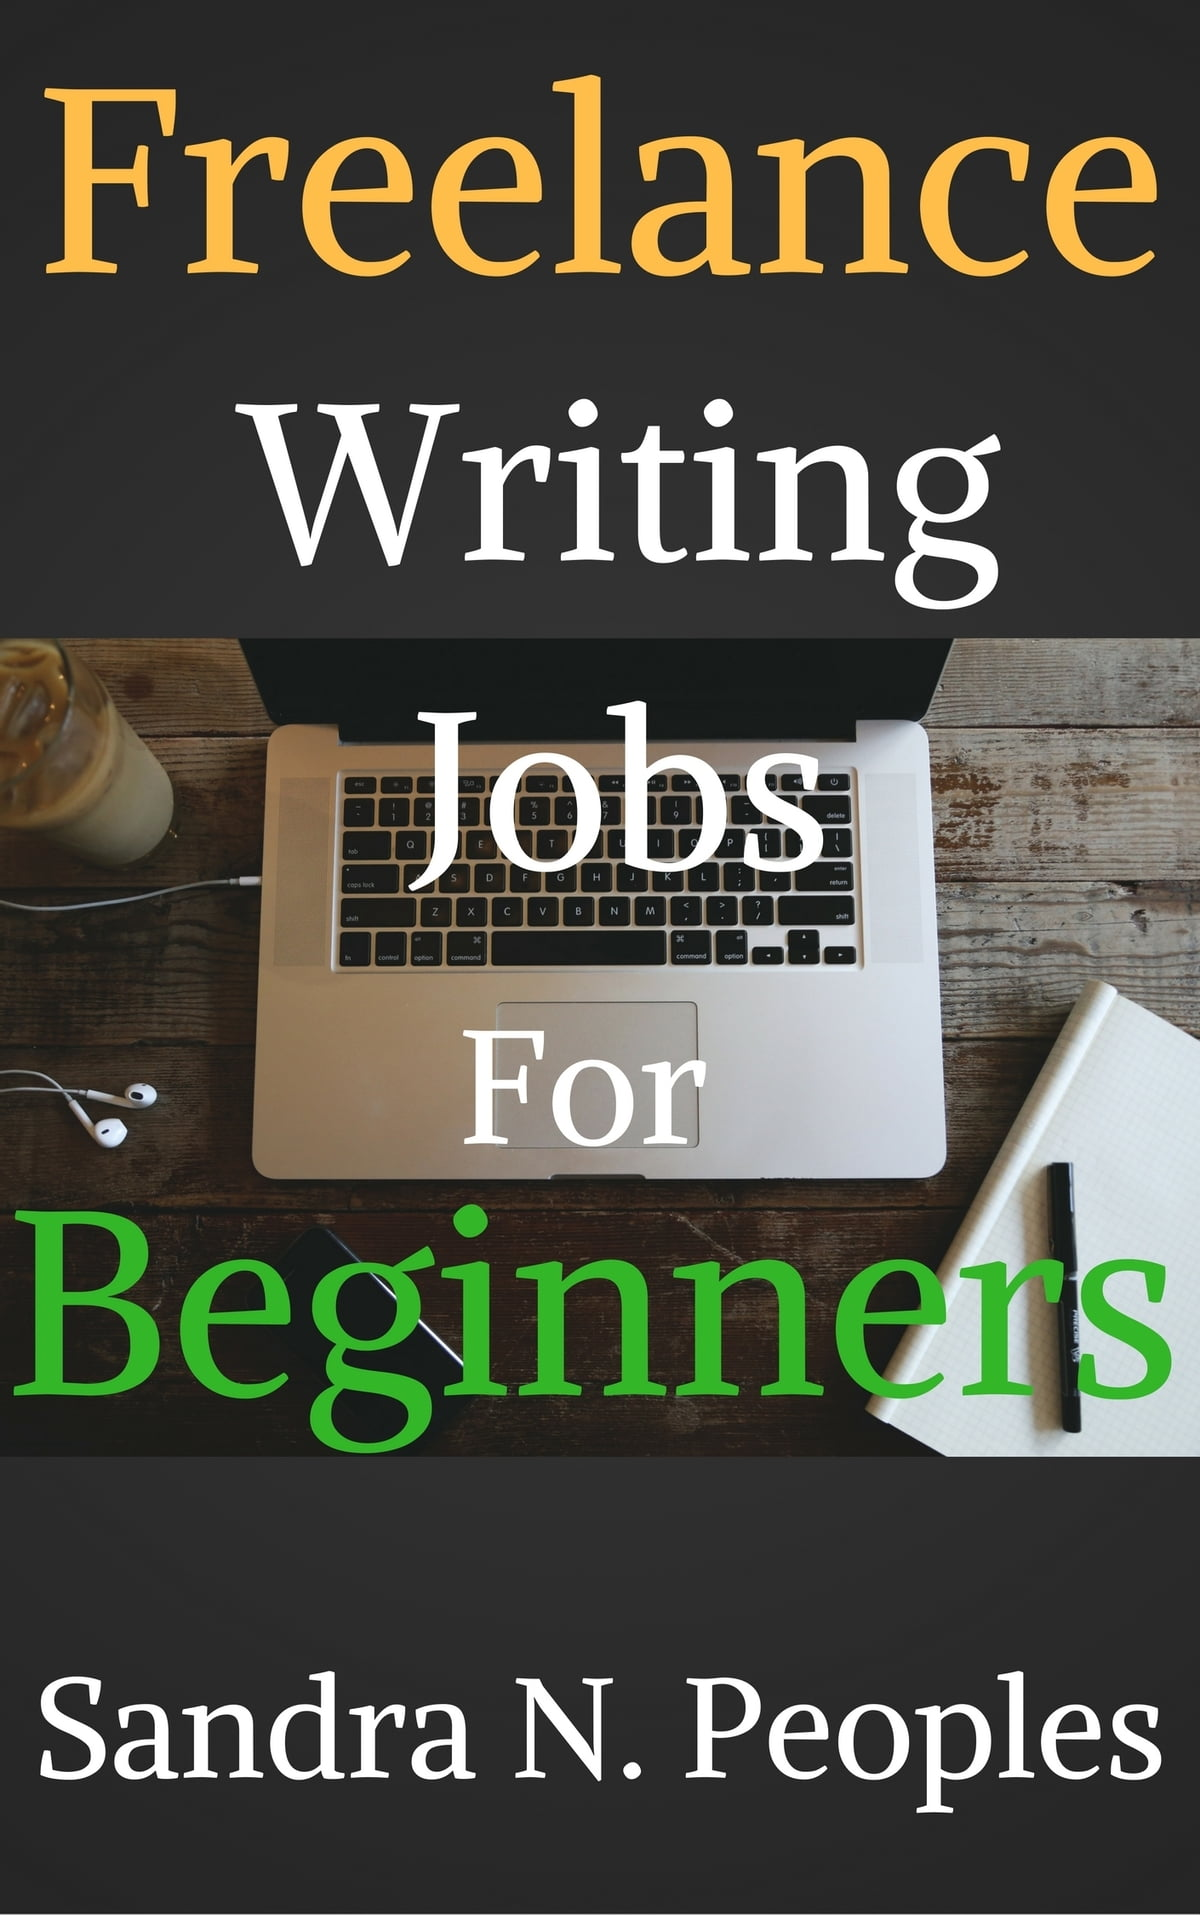 lancer writing jobs lance writing jobs for beginners  lance writing jobs for beginners 91 121 113 106 lance writing jobs for beginners newcomer essentials